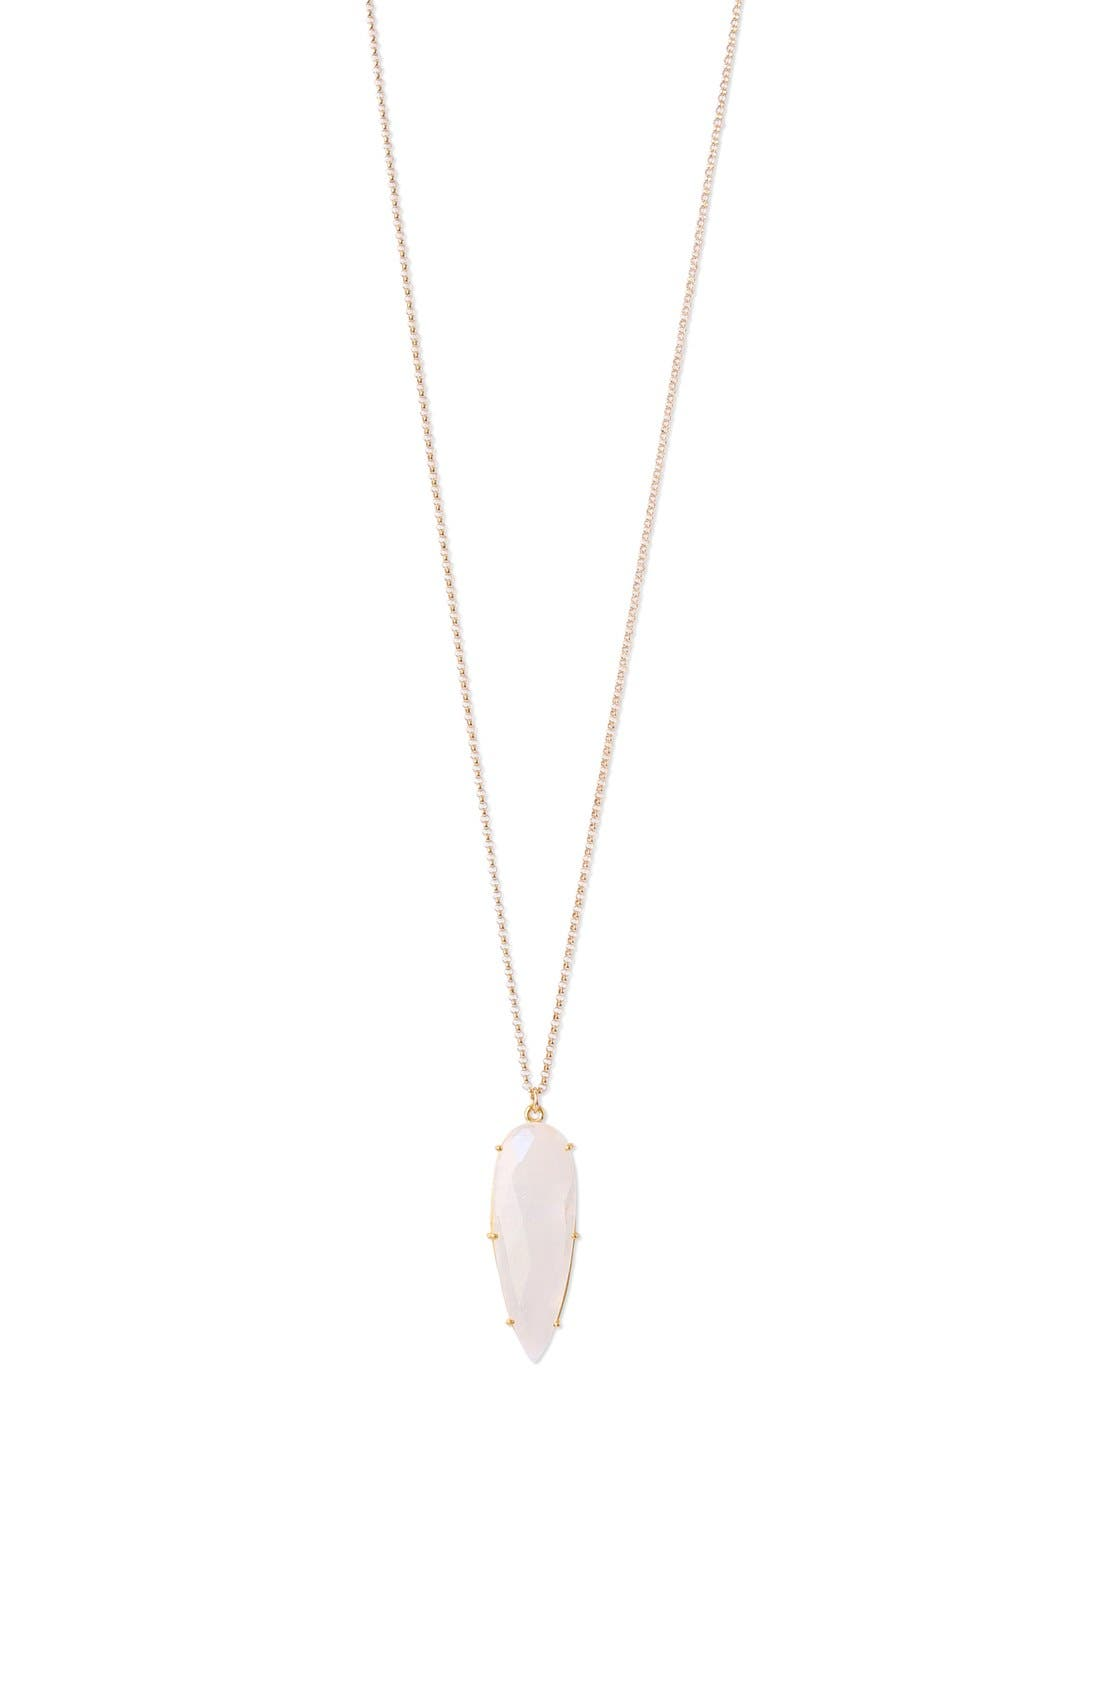 LEAH ALEXANDRA Prism Long Pendant Necklace